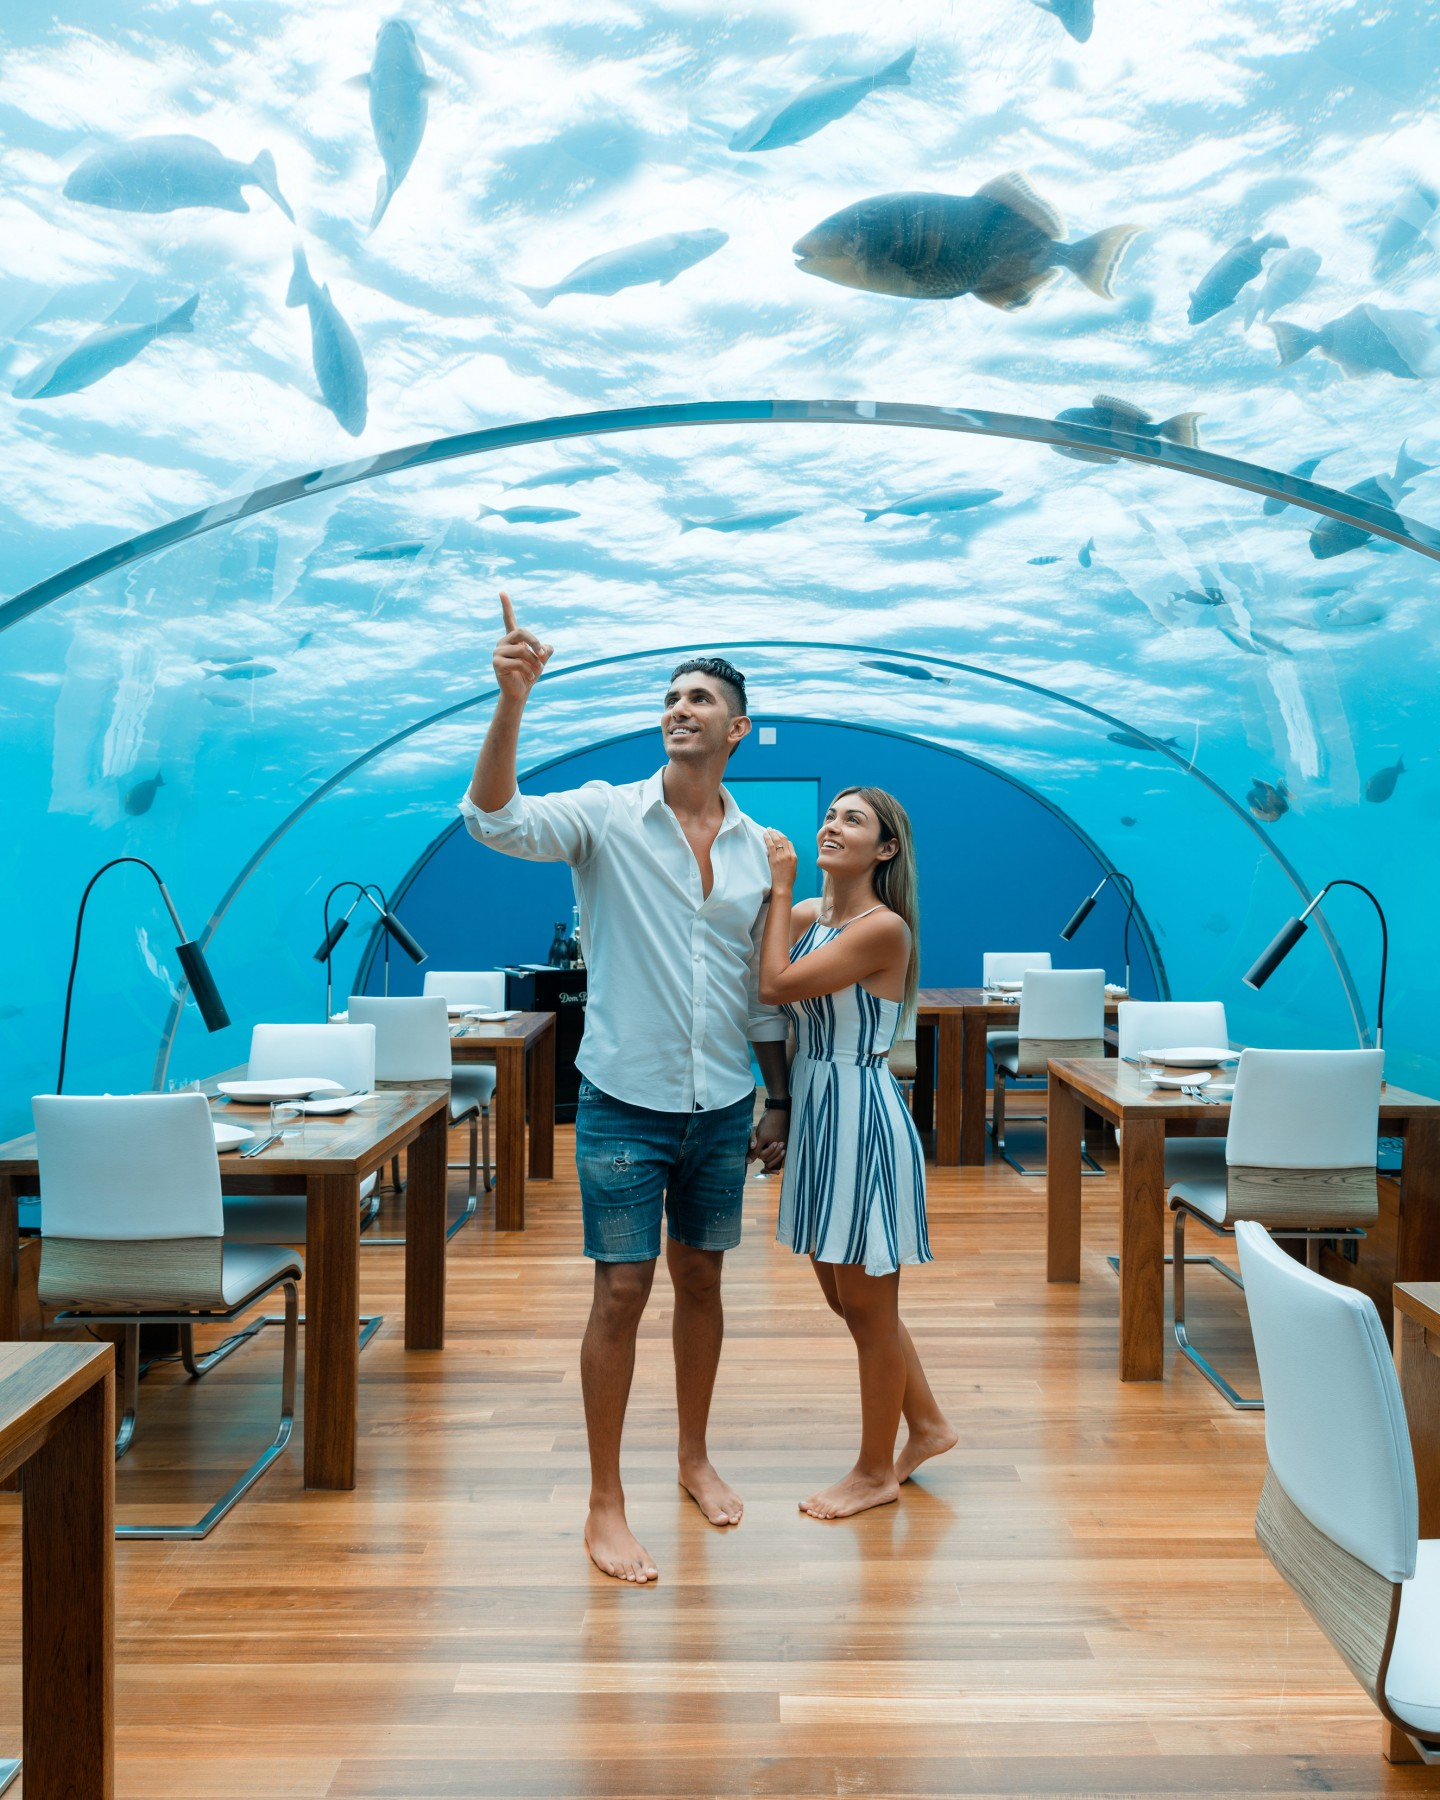 Conrad Maldives Rangali Island: Family Friendly & Active Relaxation in the Maldives